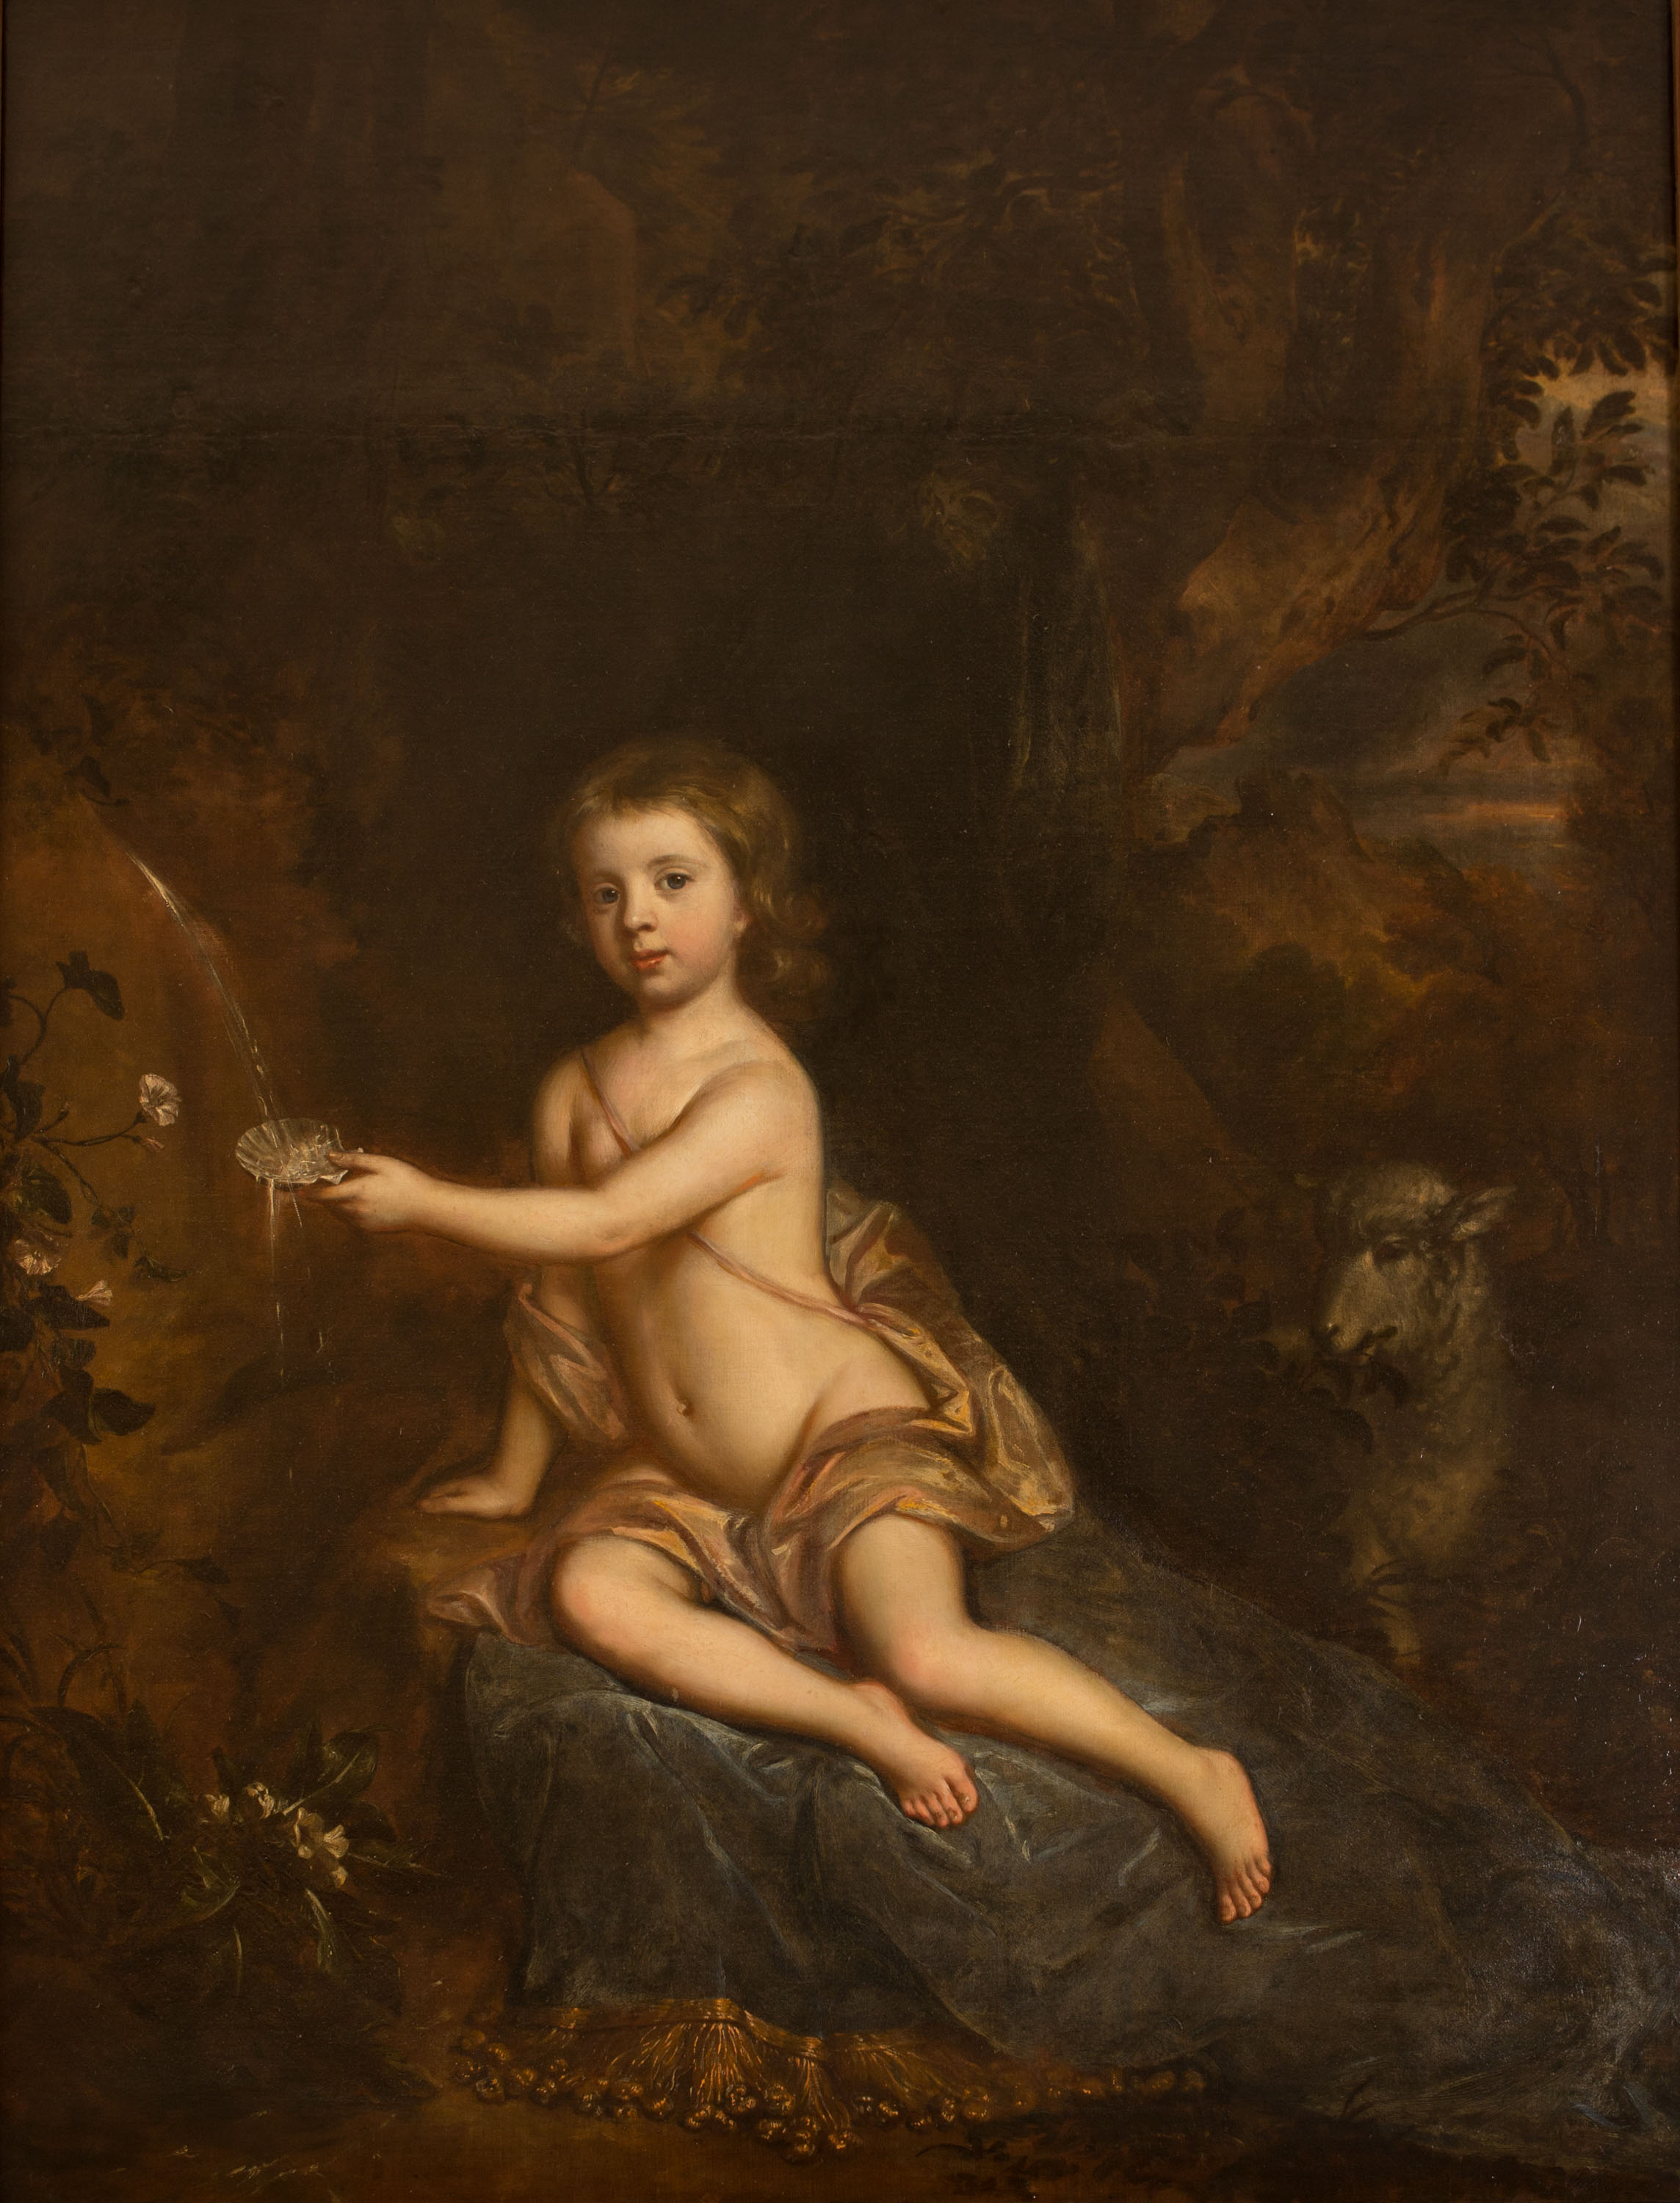 Portrait of Hon. Charles Cecil, as a Boy, by Willem Wissing (1656-1687).